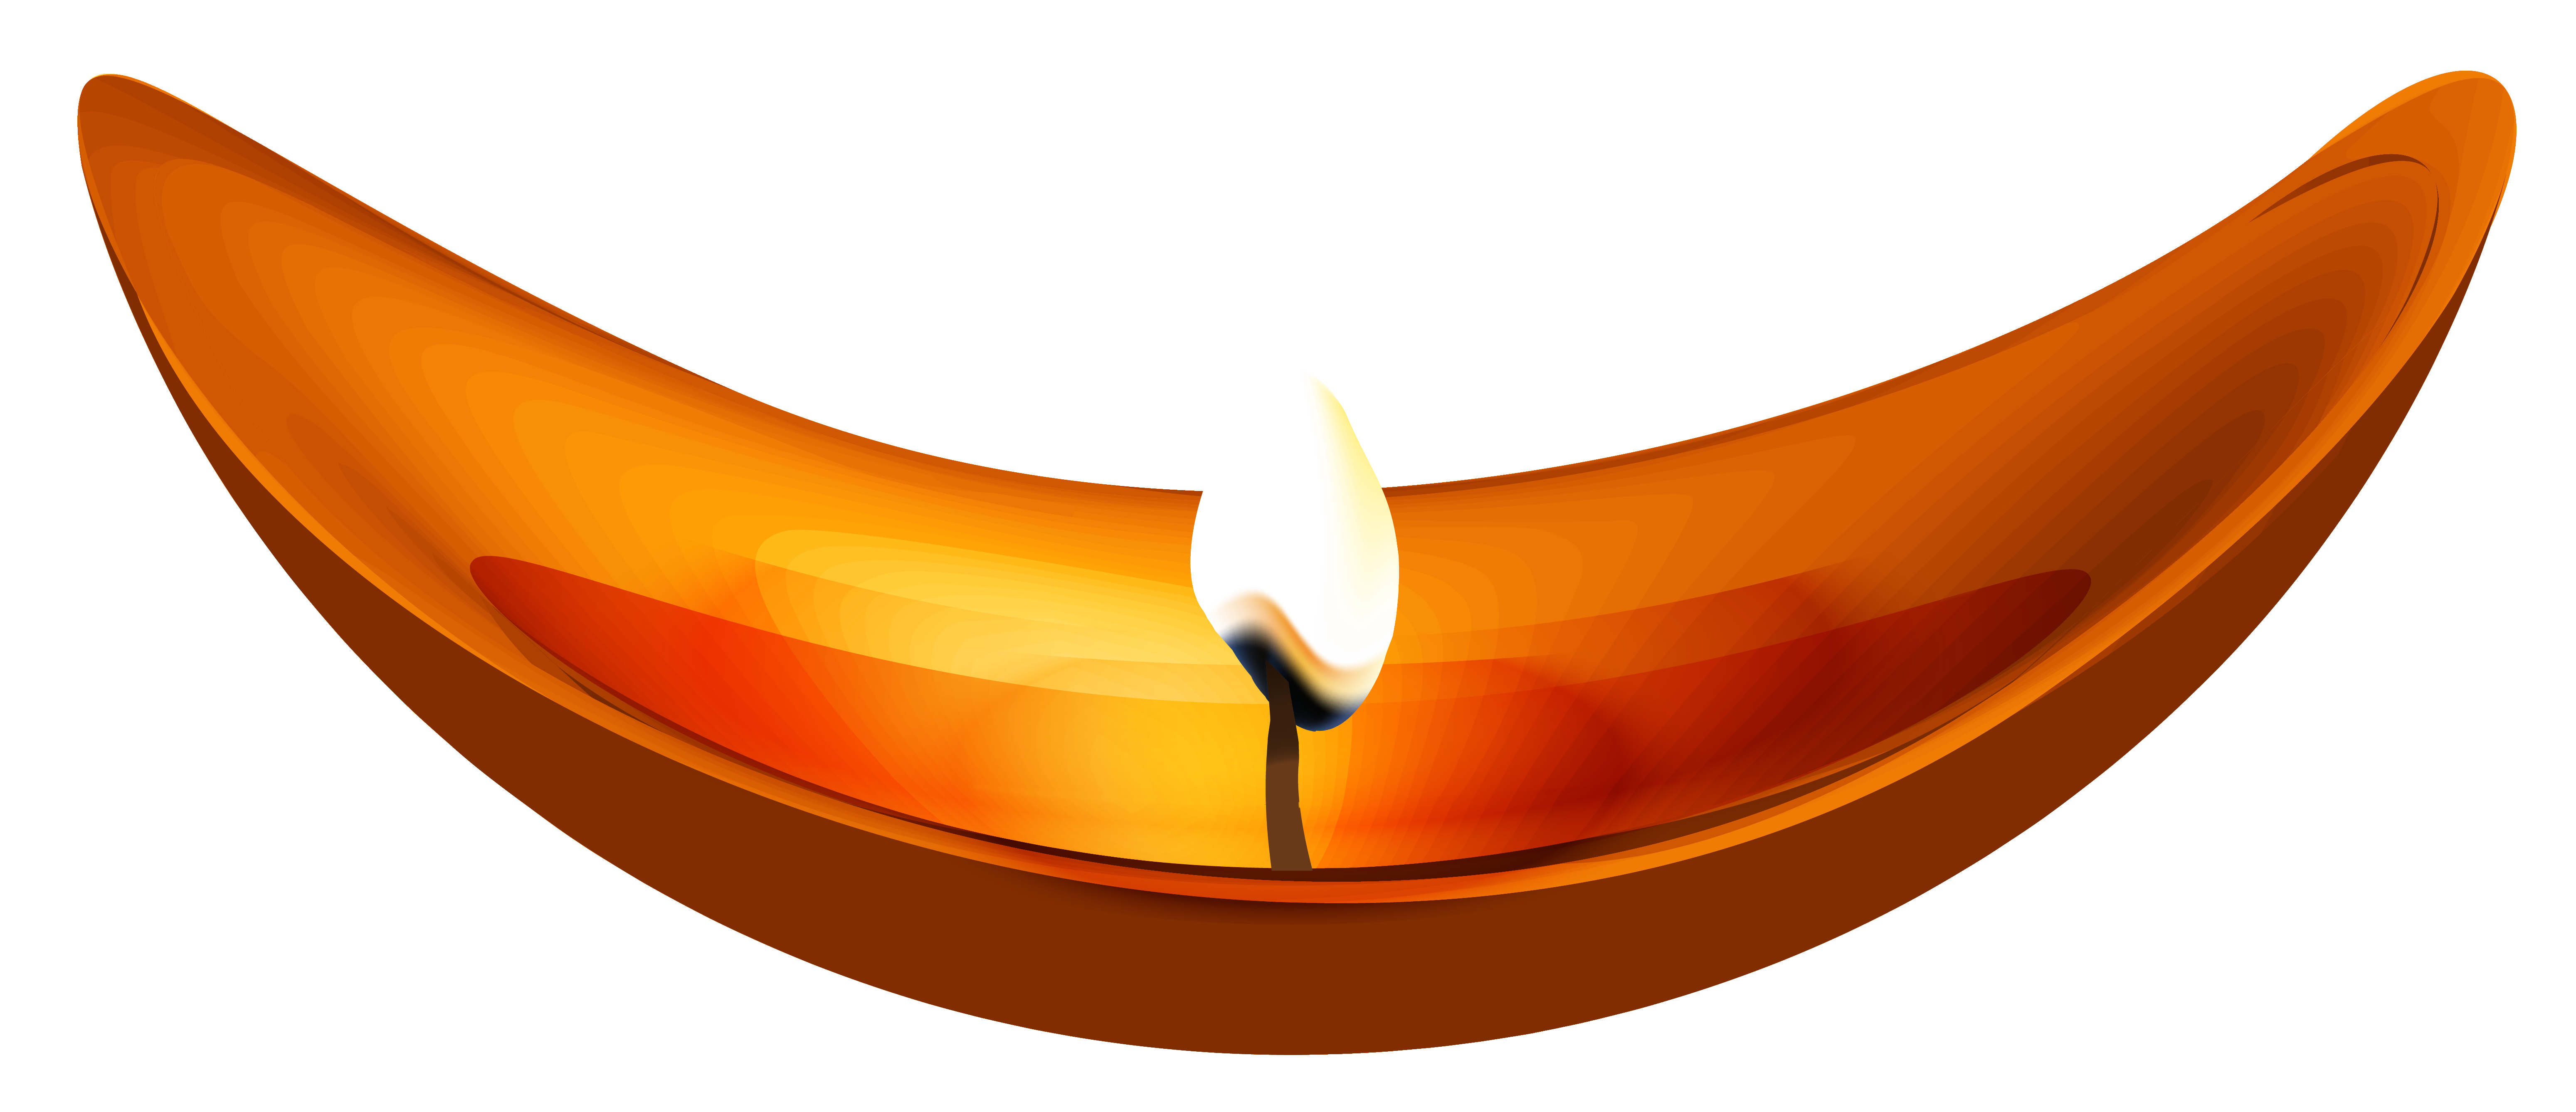 6196x2675 Diwali Candle Png Clipart Pictureu200b Gallery Yopriceville